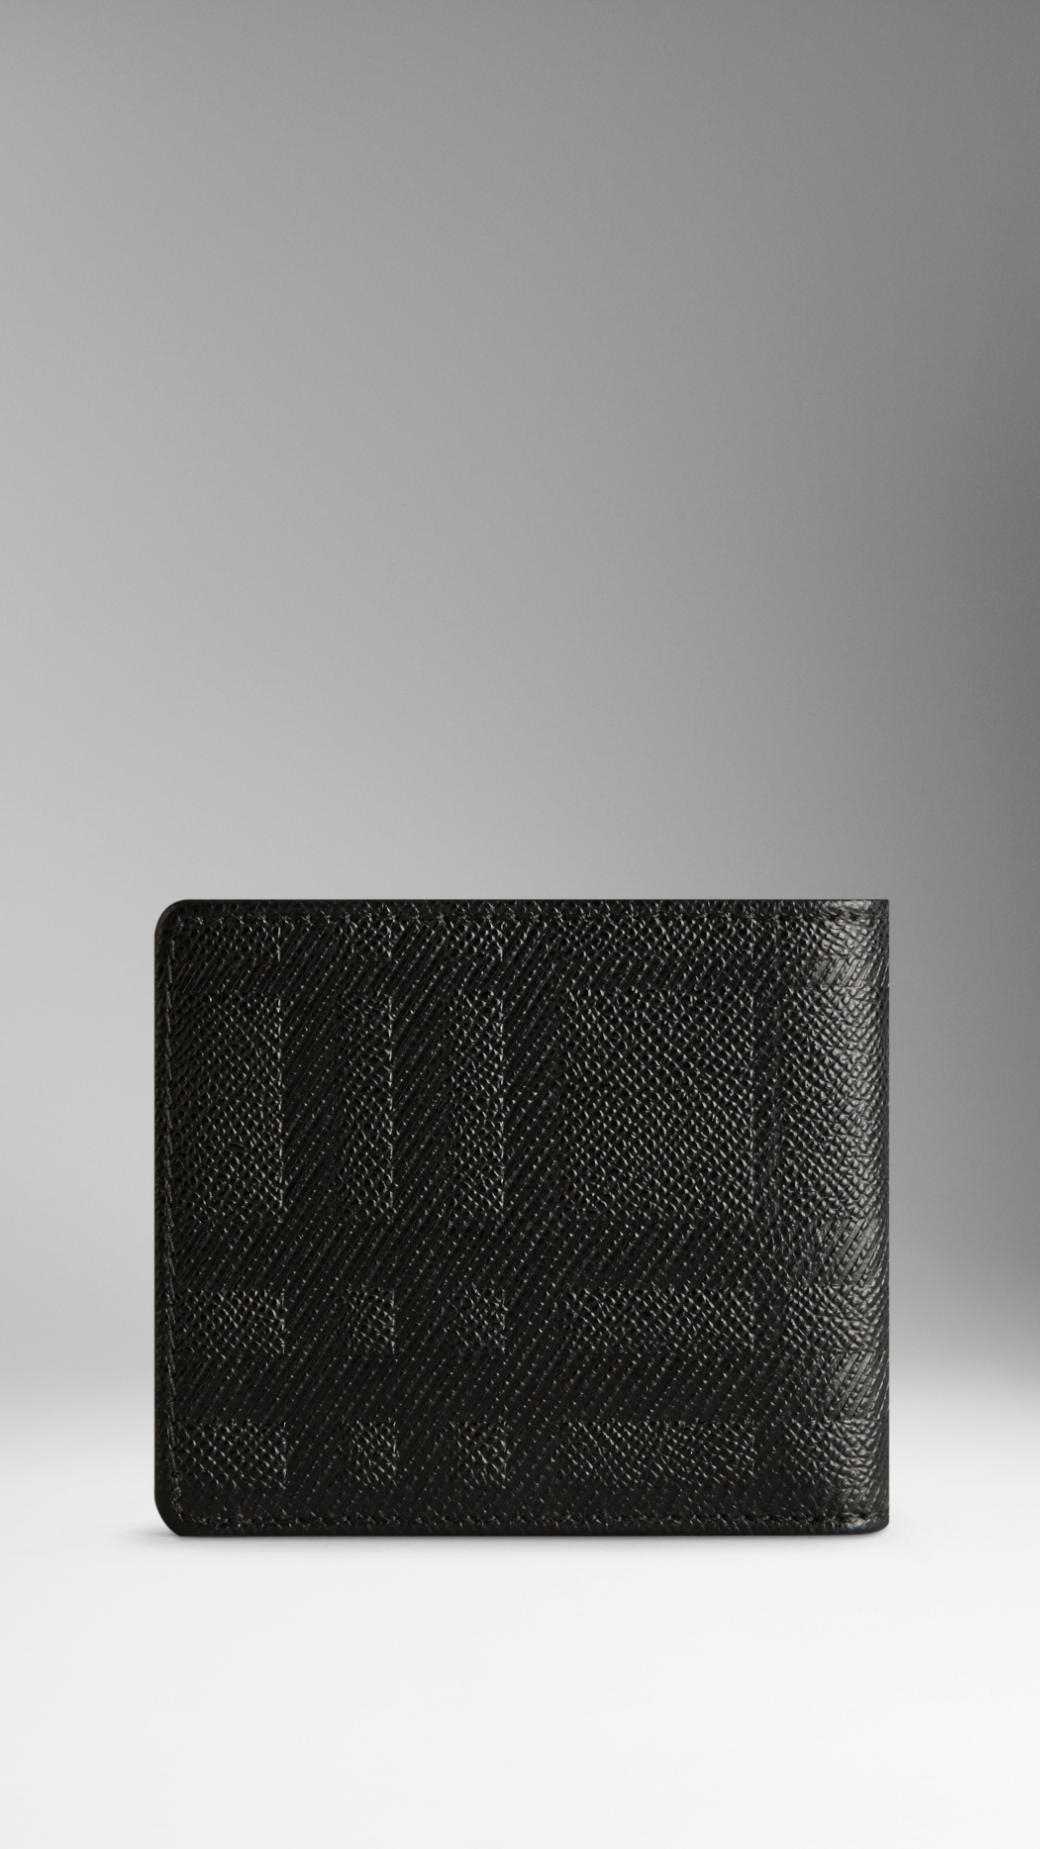 embossed leather folding wallet - Black Burberry YAm44knt